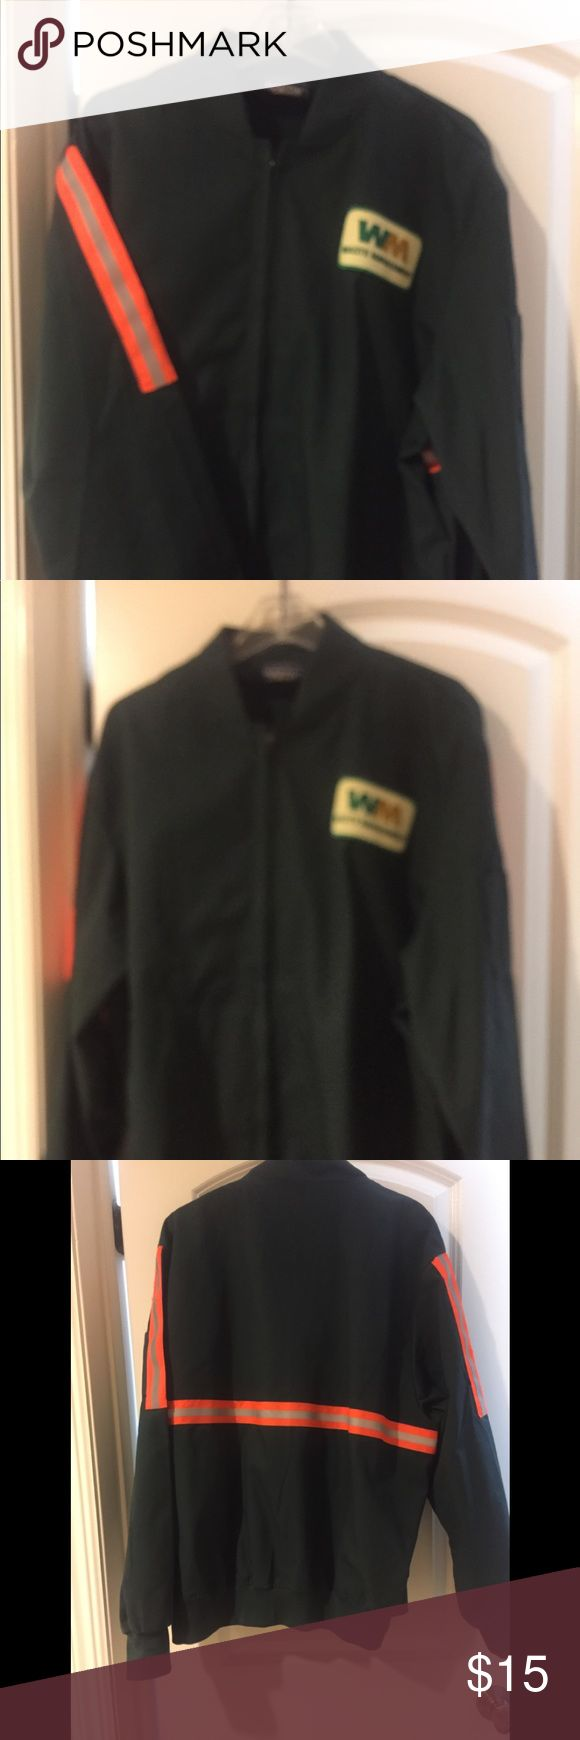 Men's safety jacket/windbreaker Navy zip up windbreaker with safety reflective tape on sleeves and back.  Two front pockets and one small pocket on sleeve.  Waste Management logo also makes this great as sanitation worker costume for Halloween! Jackets & Coats Windbreakers